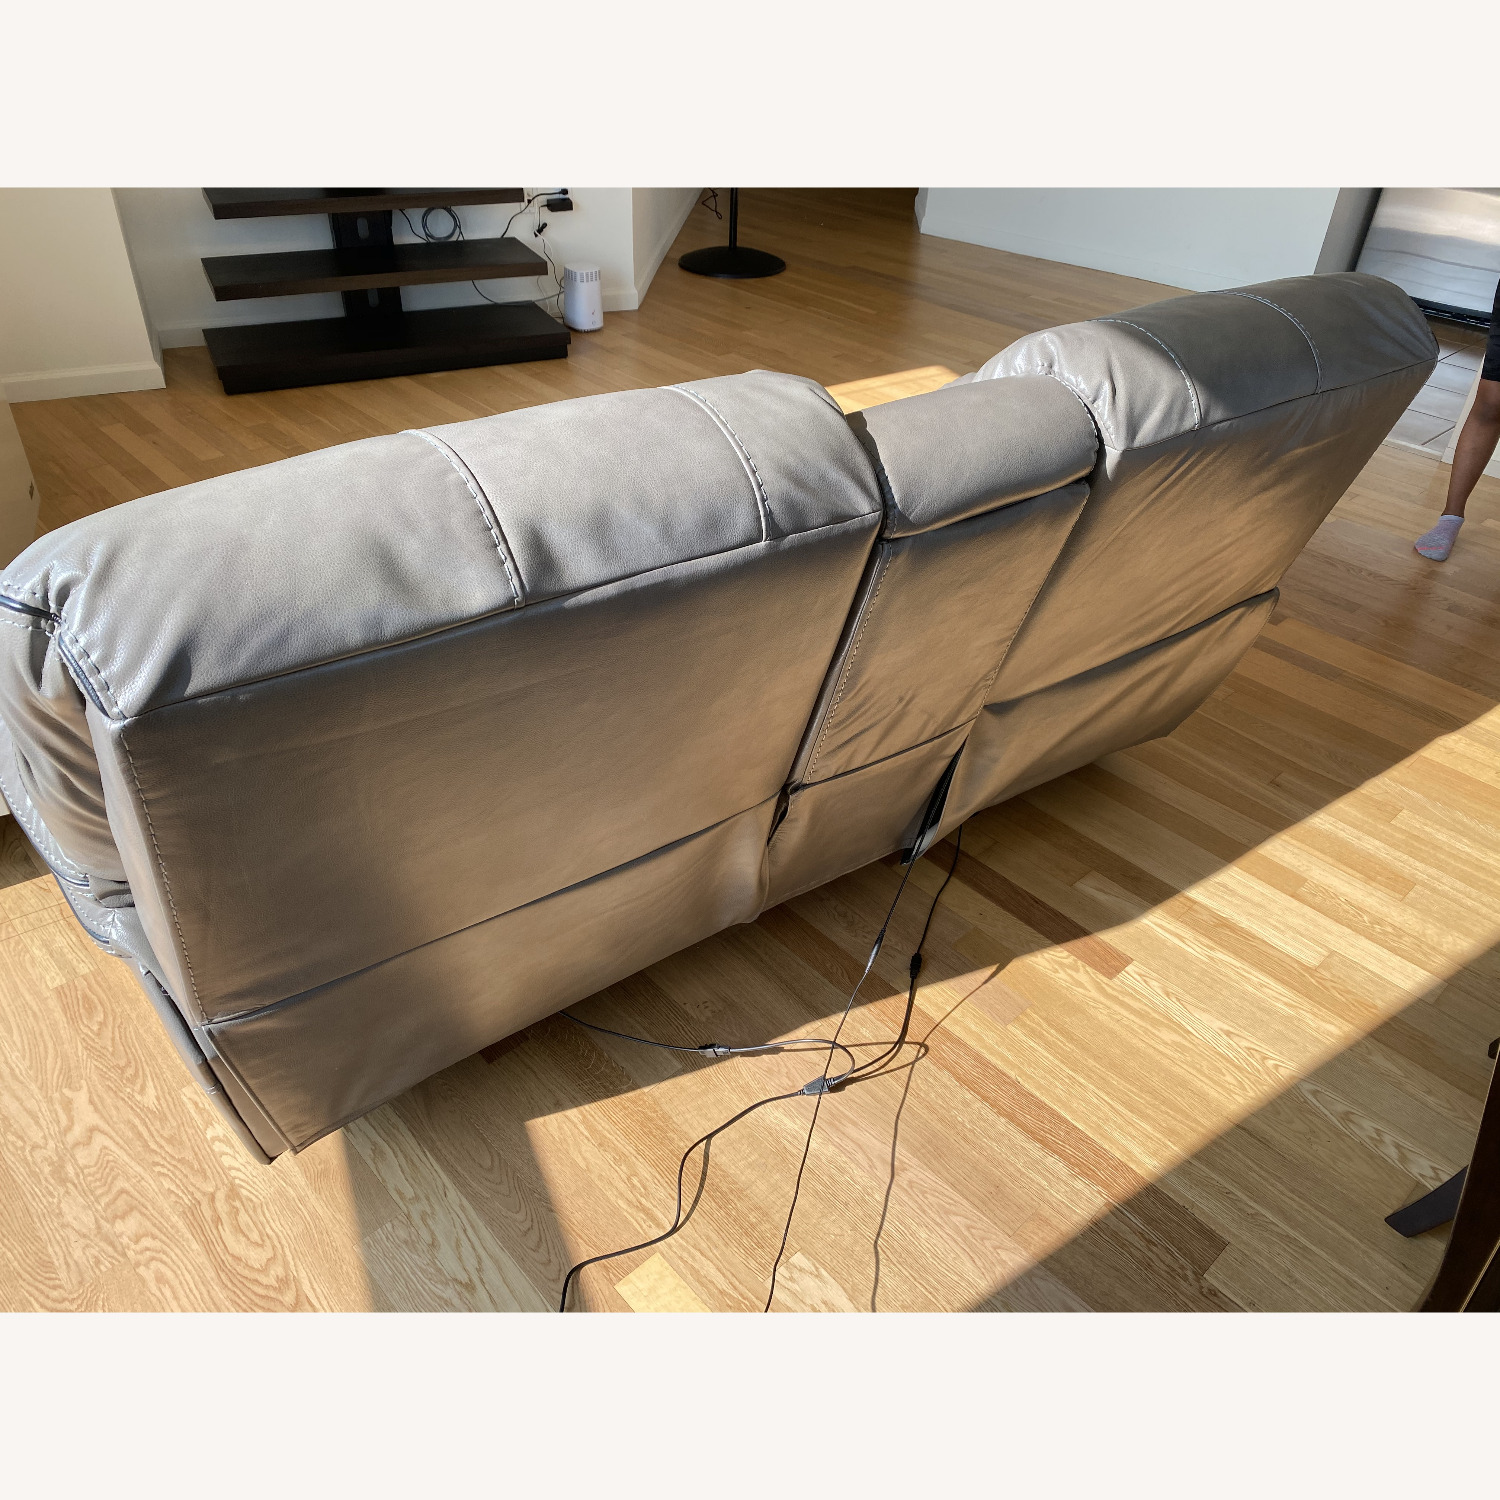 Grey Leather Recliner Sofa - image-4